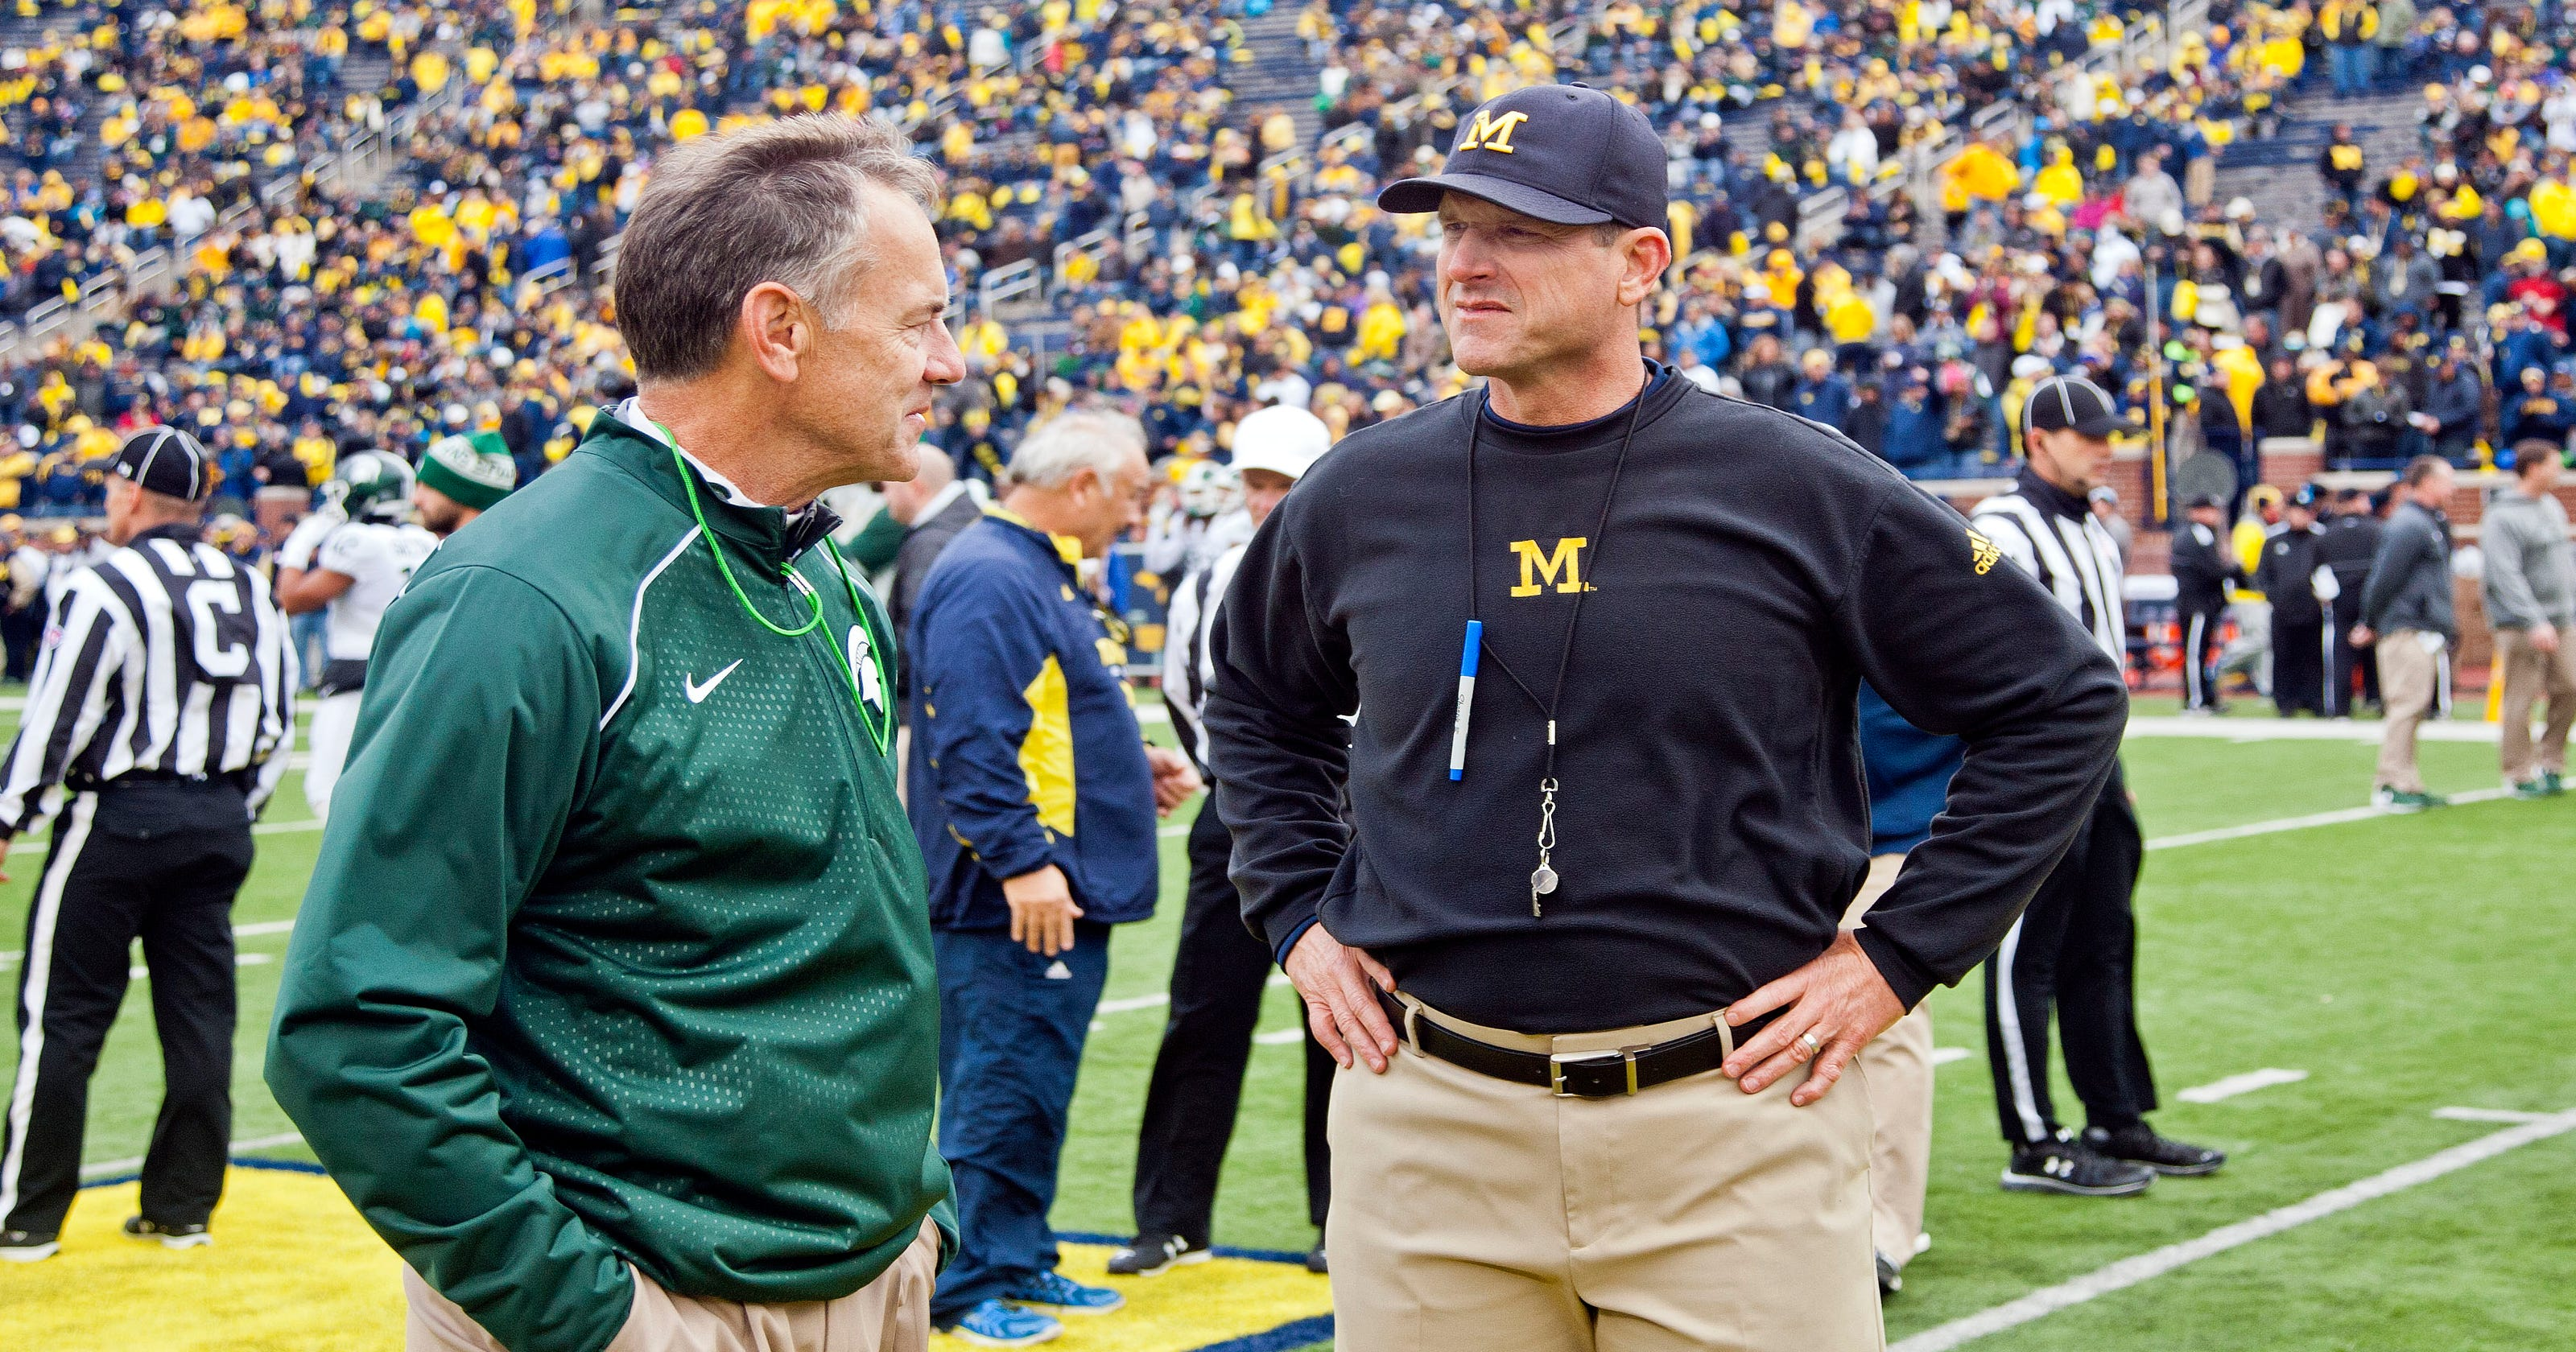 ef91d43f66a Why Michigan and Michigan State are crushing it on the recruiting trail